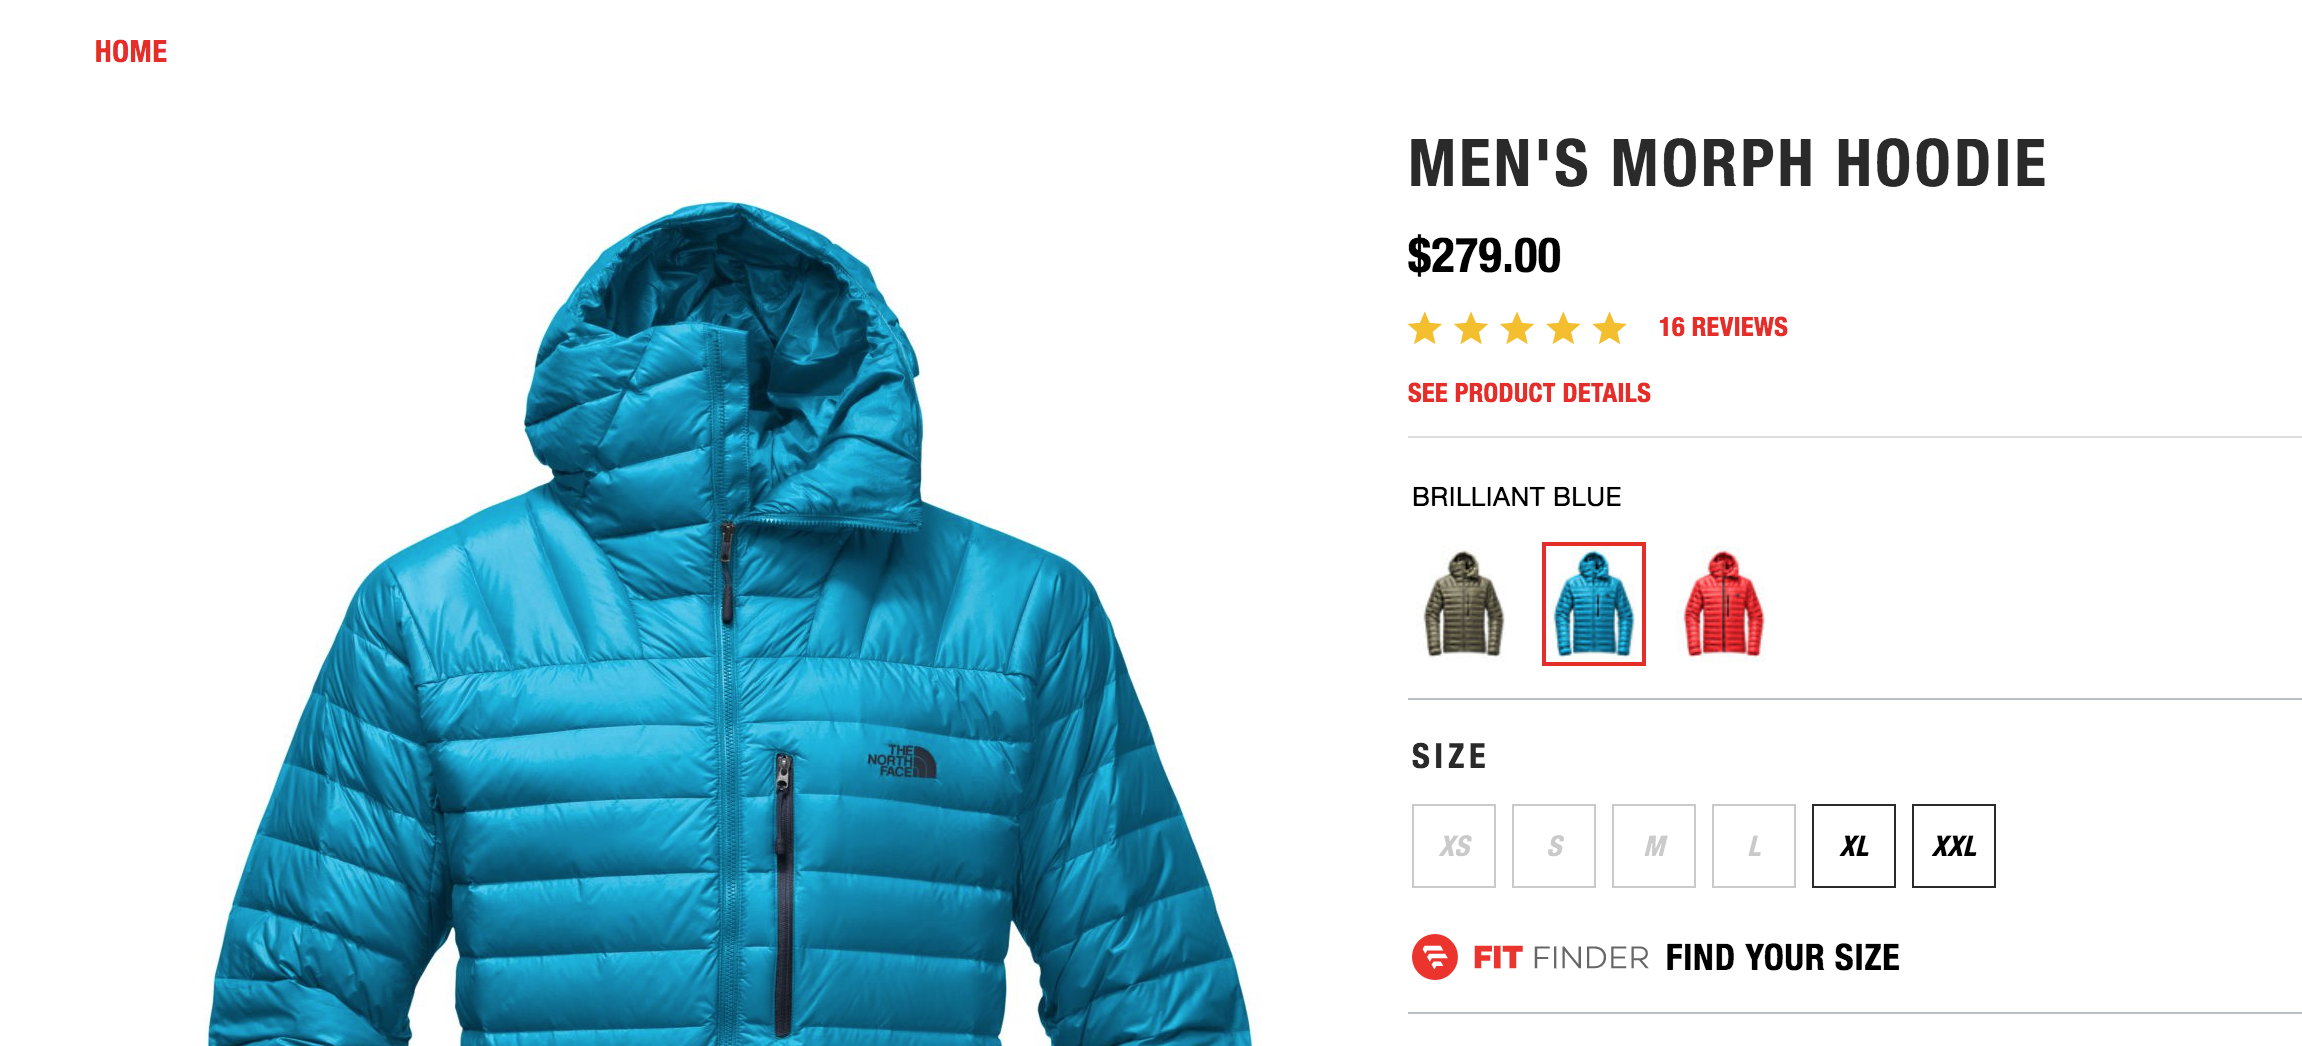 2b0d0dbda The North Face Morph Hoodie Review 2019 - Single Geared